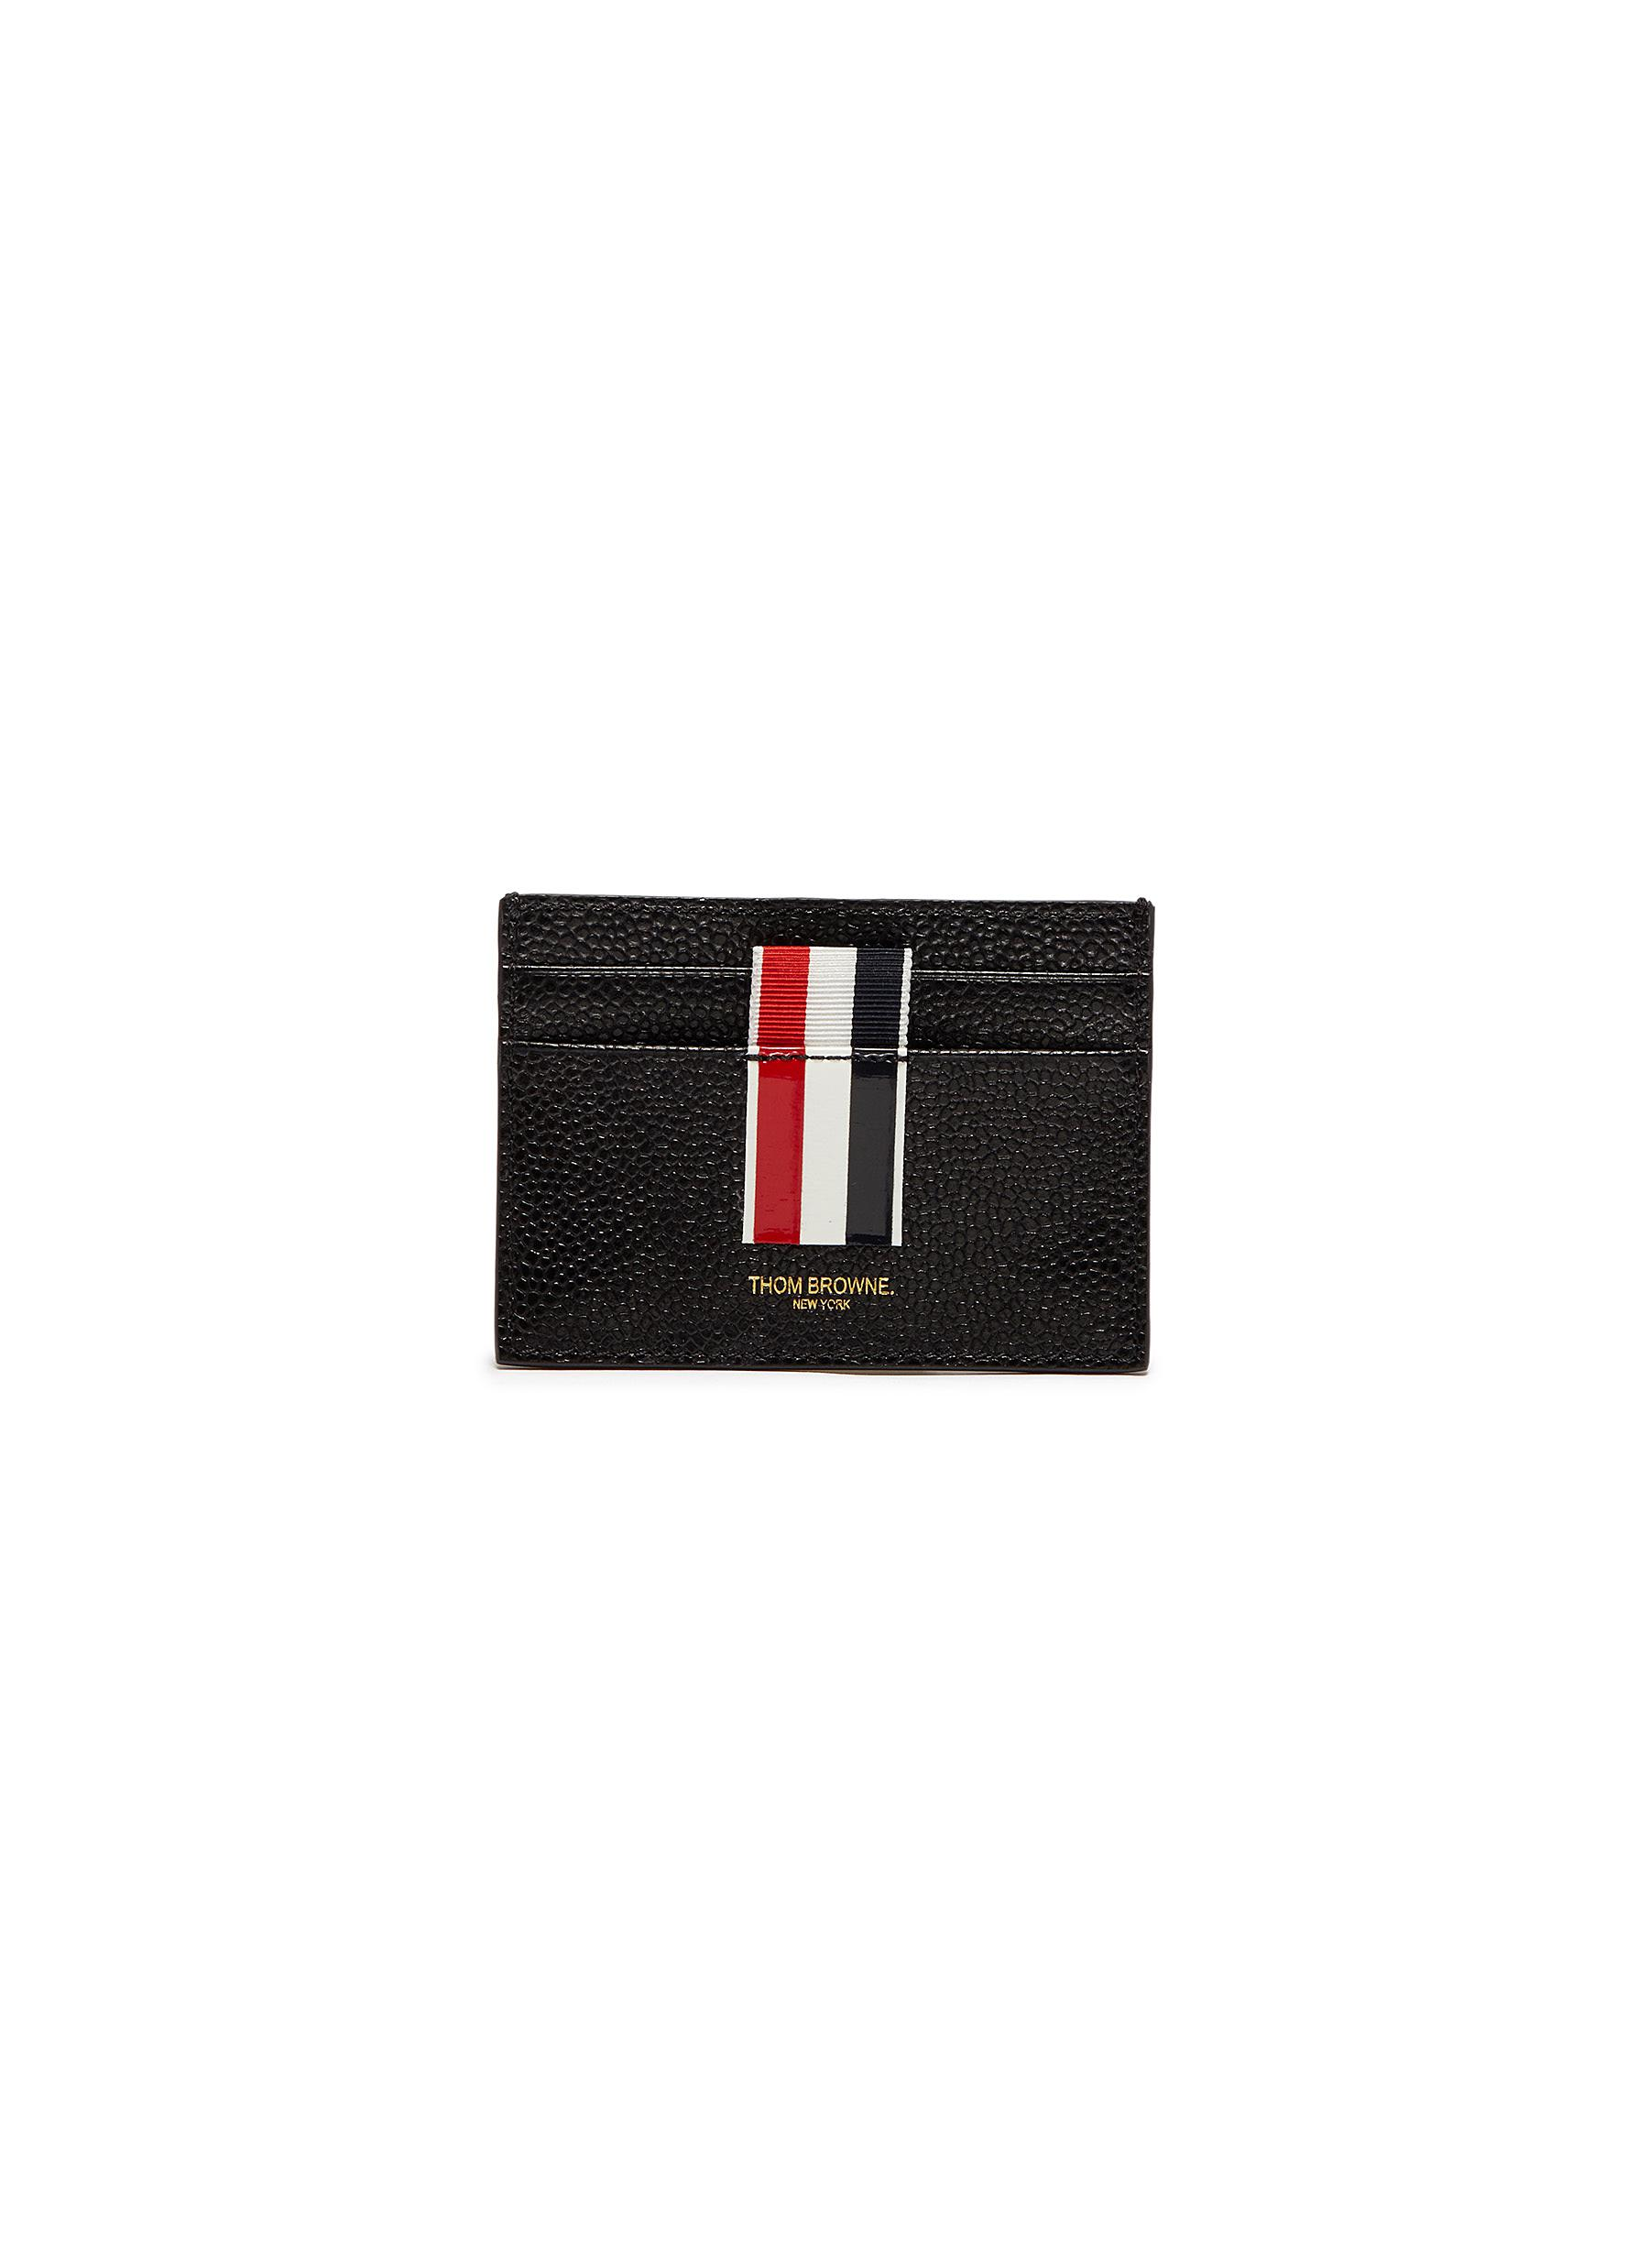 1f27f112fdc Main View - Click To Enlarge - Thom Browne - Stripe pebble grain leather  cardholder